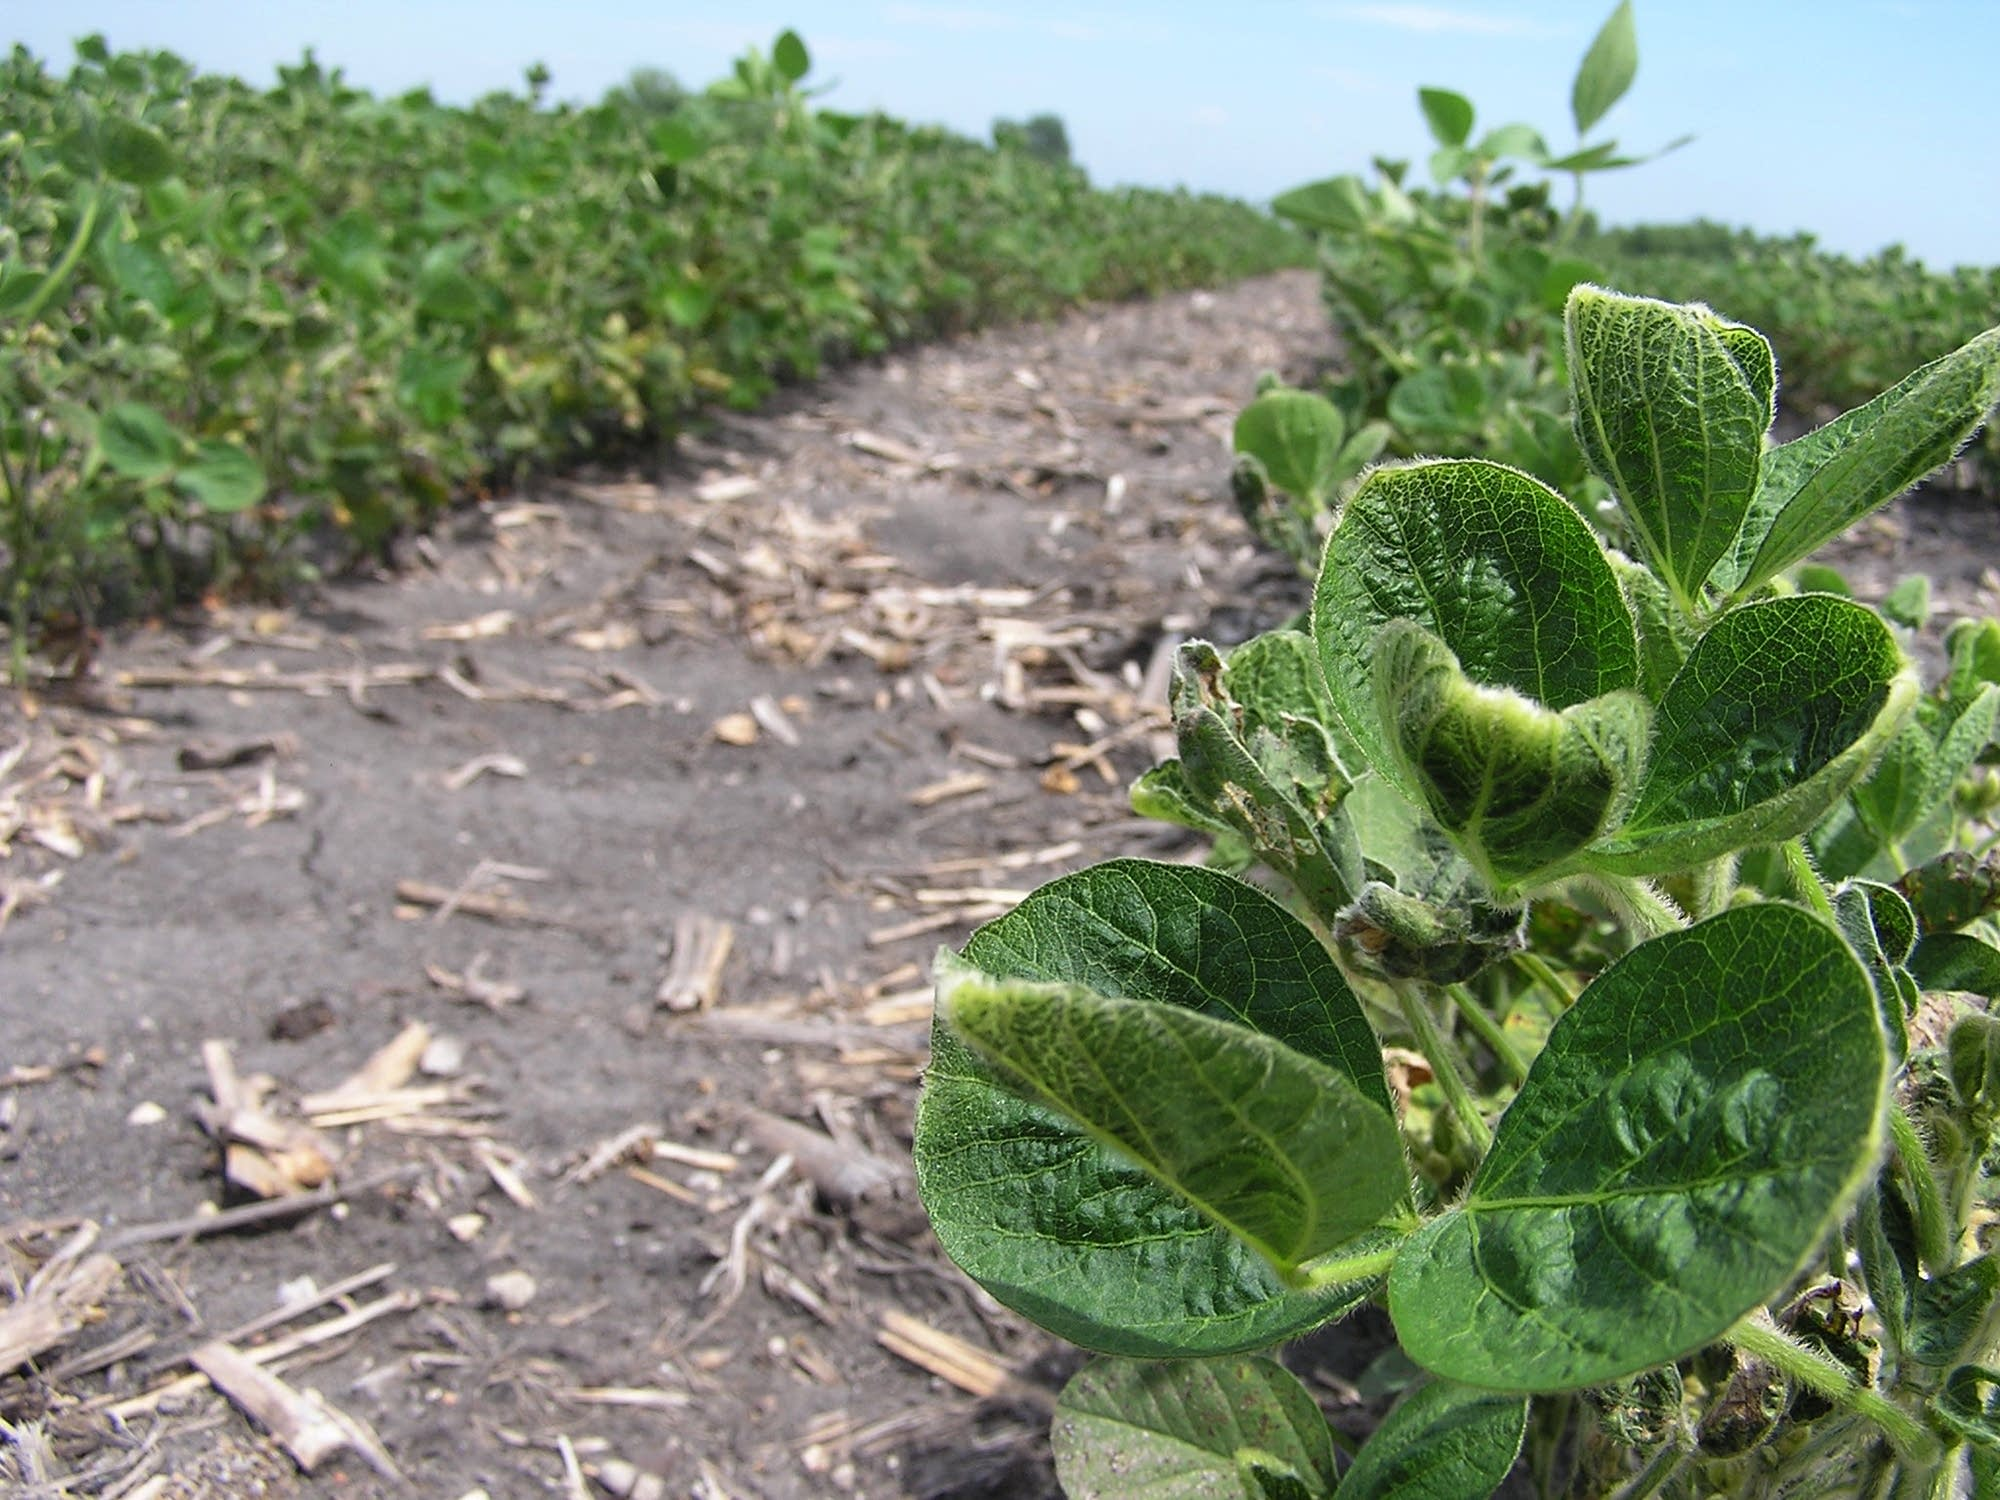 Crop consultants believe dicamba drift caused rounded, cupped leaves.